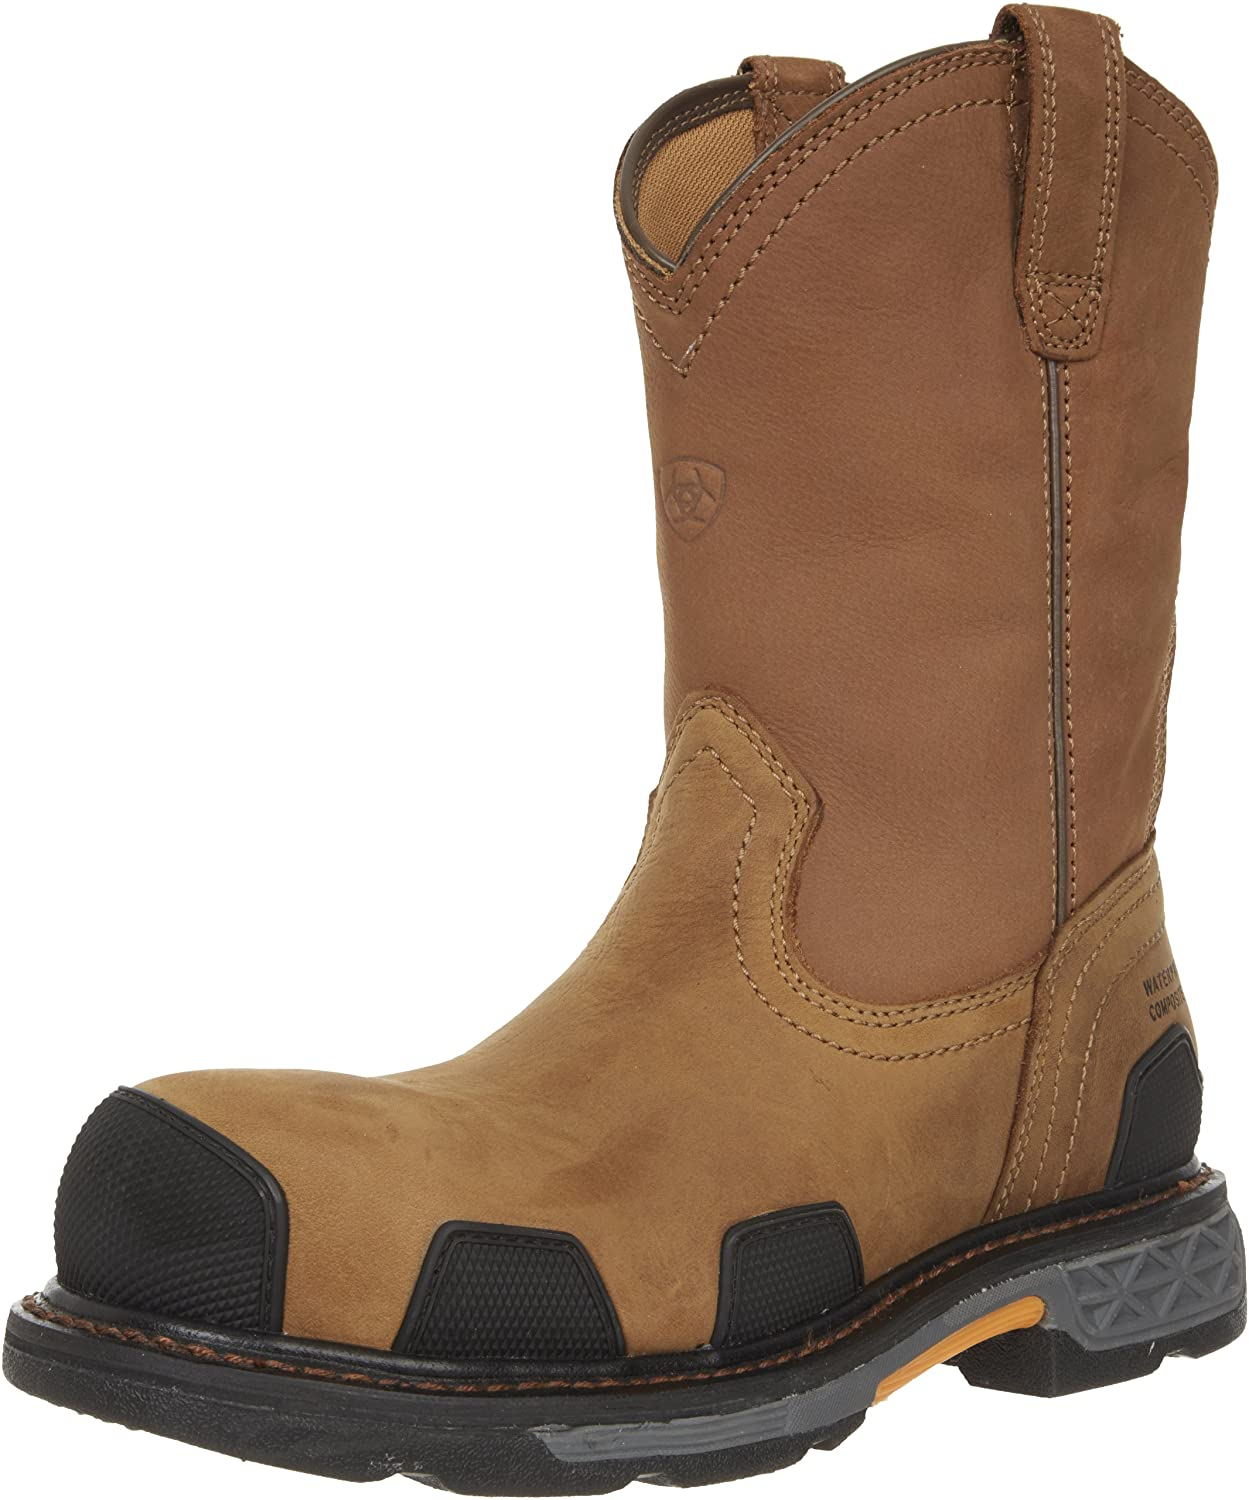 Ariat メンズ Dusted Brown 10.5 D(M) US 10.5 D(M) USDusted Brown B0091W2WEU